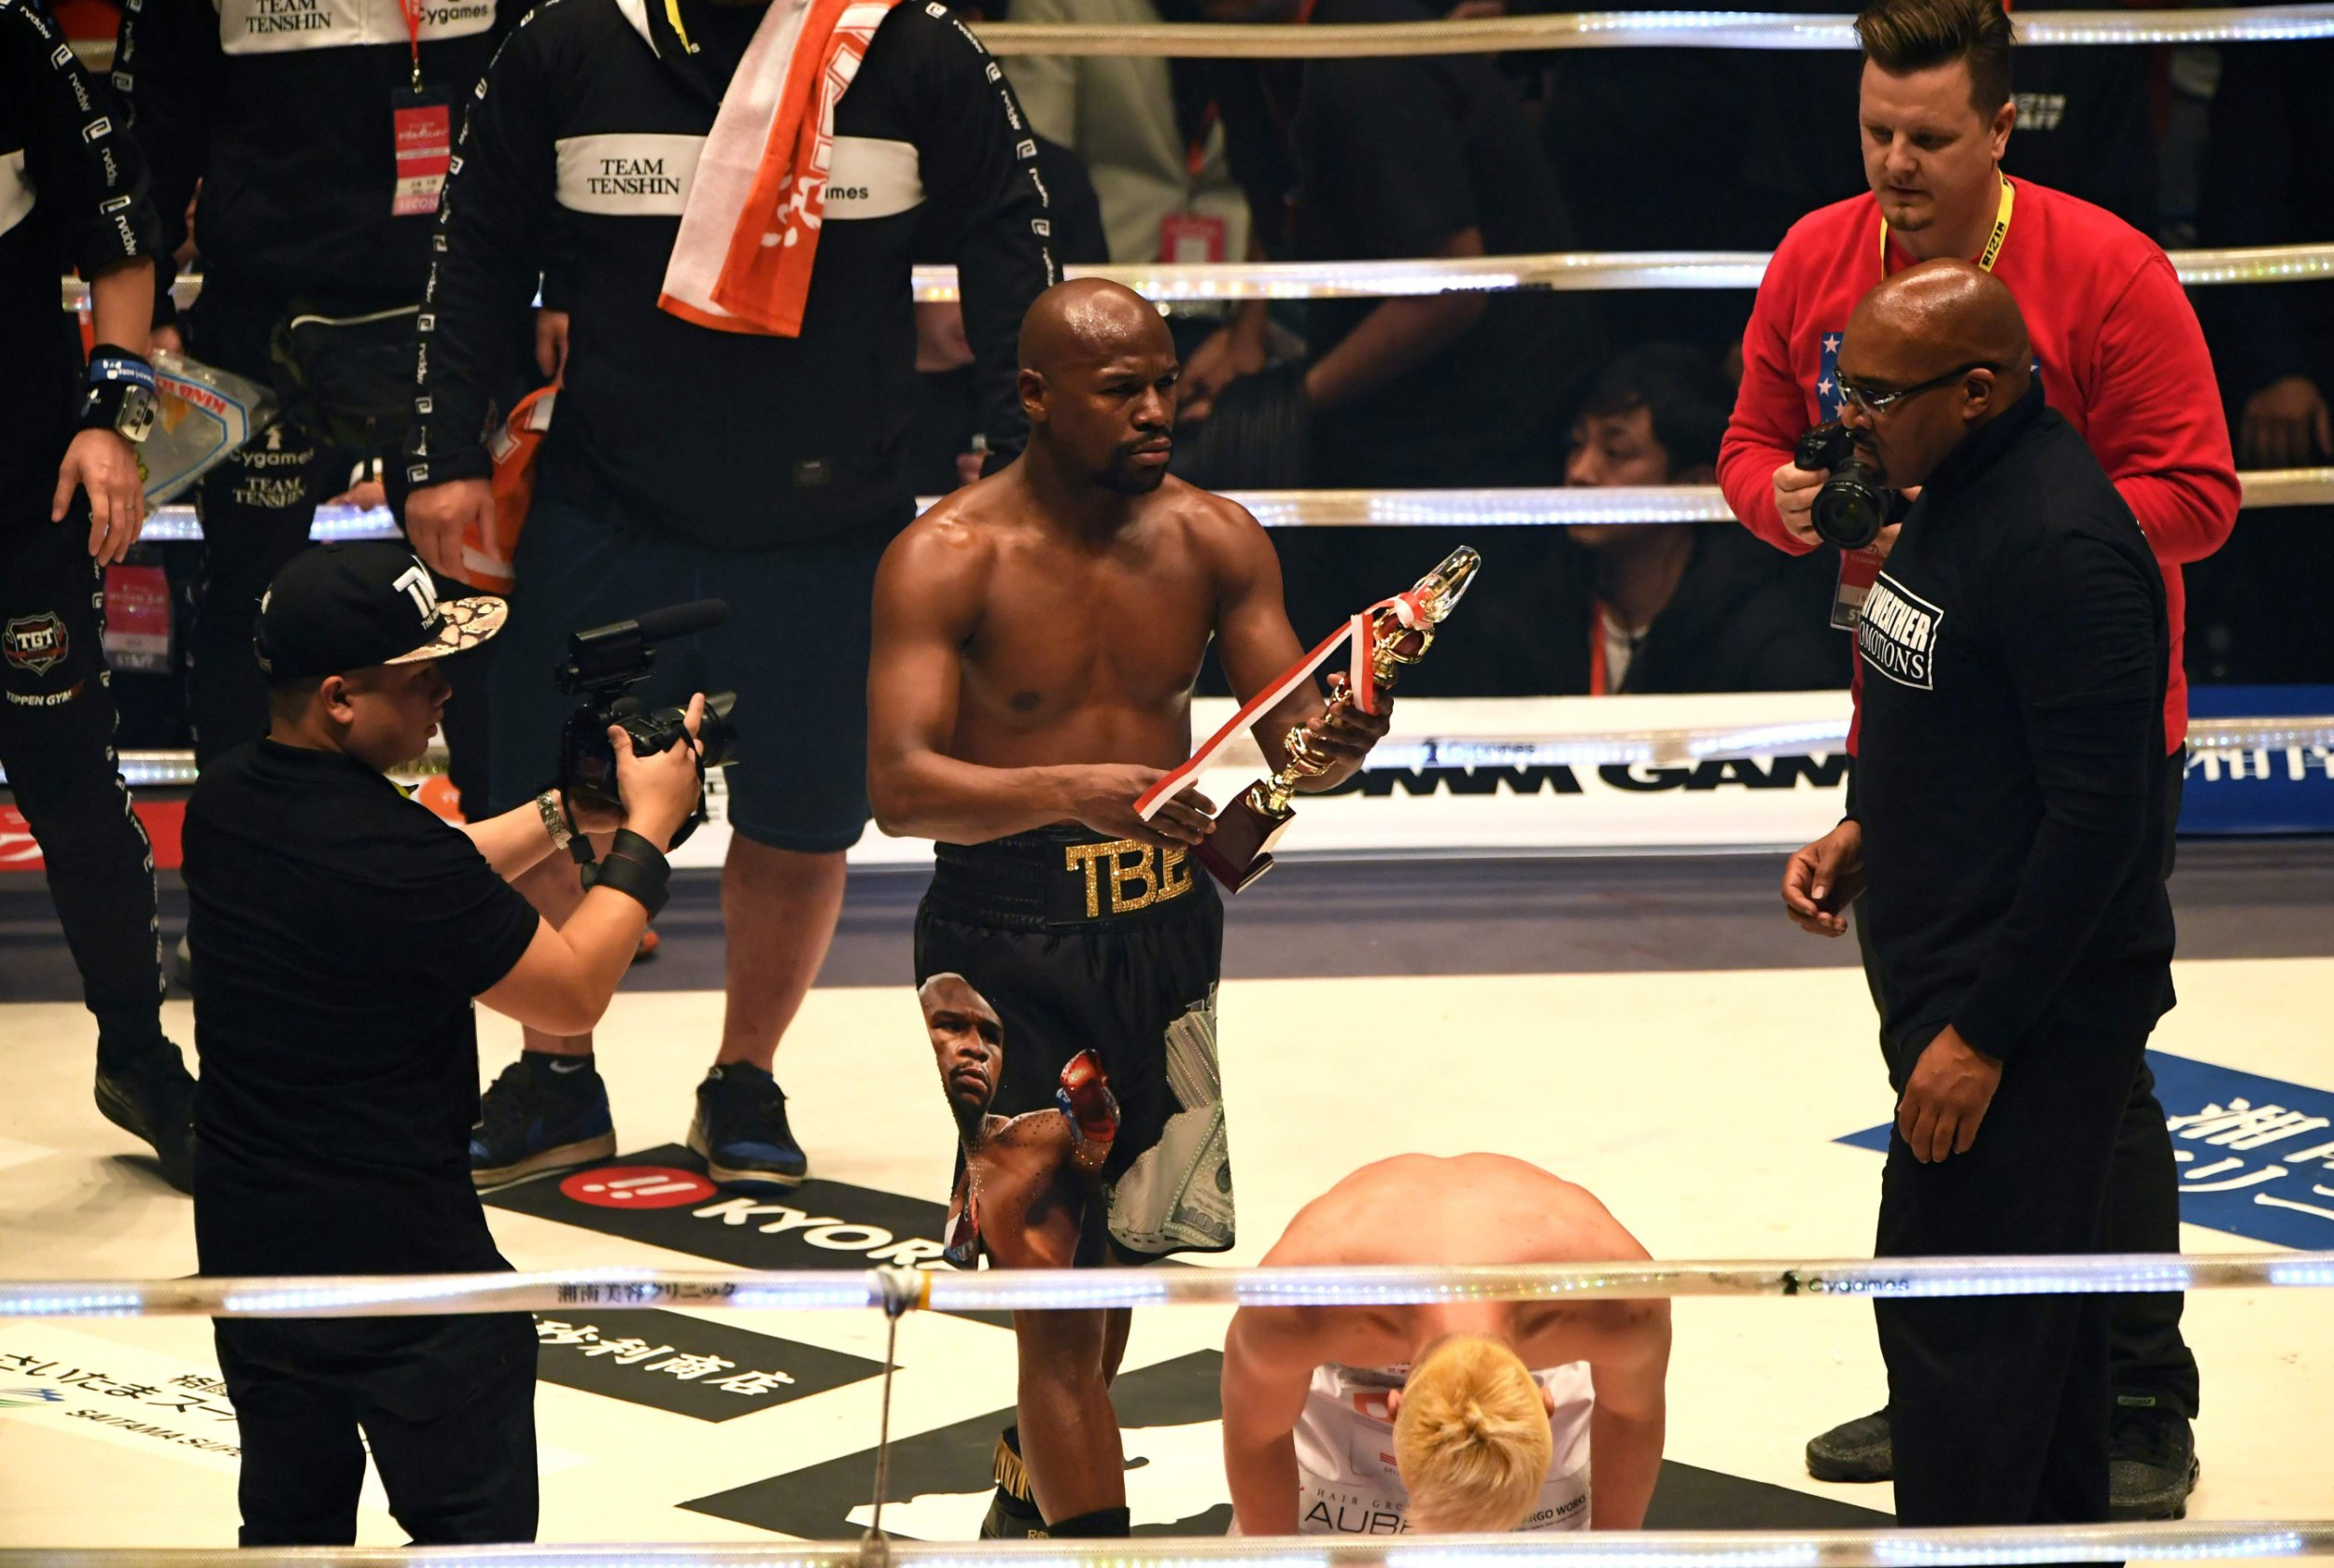 """US boxing legend Floyd Mayweather Jr (c) holds the trophy after winning the exhibition fight against Tenshin Nasukawa of Japan (C-R)) at Saitama Super Arena in Saitama on December 31, 2018. - Floyd Mayweather beat Japanese kickboxing phenomenon Tenshin Nasukawa by a technical knock-out in the first round of a New Year's Eve """"exhibition"""" bout that brought the US boxing superstar out of retirement. (Photo by Toshifumi KITAMURA / AFP)TOSHIFUMI KITAMURA/AFP/Getty Images"""